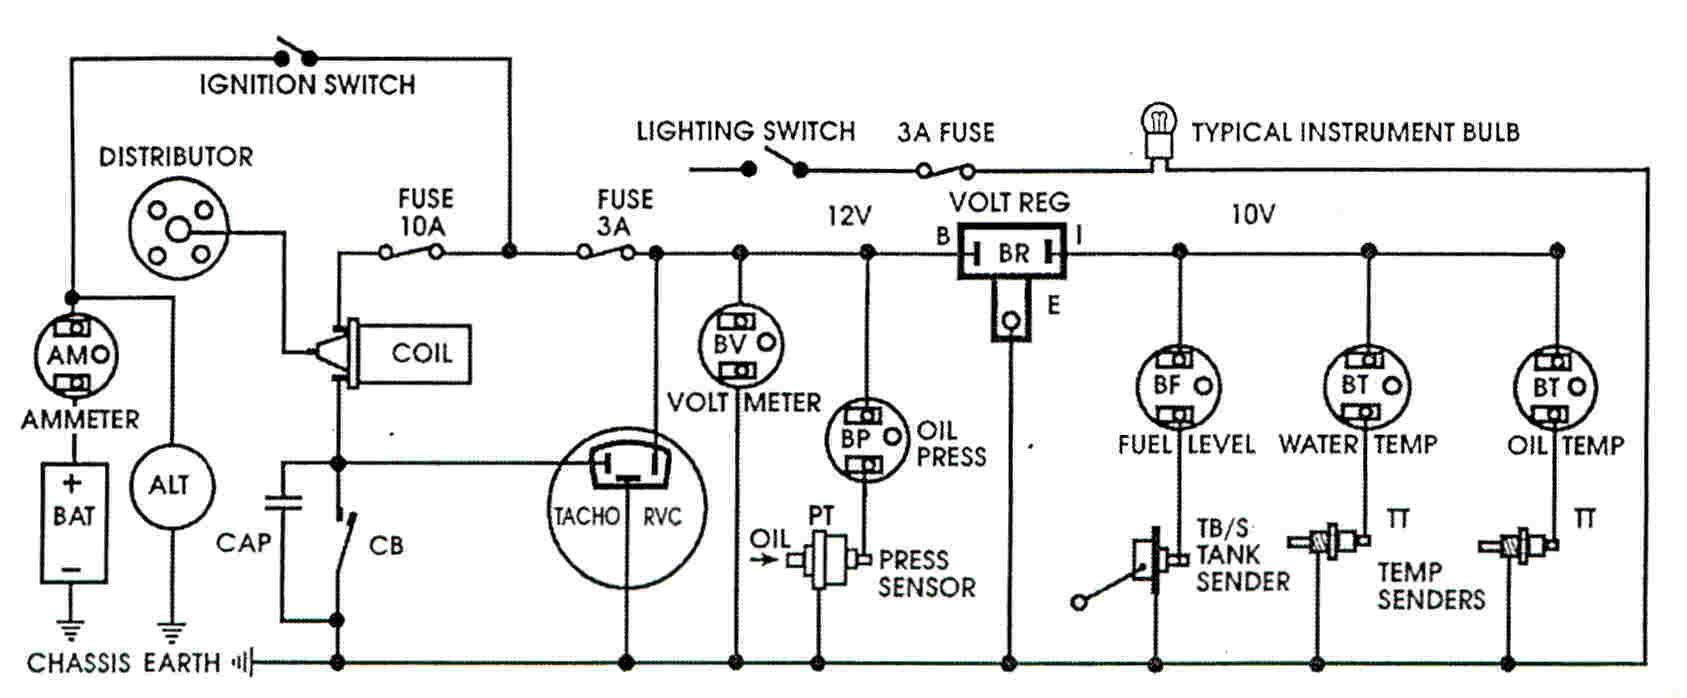 Voltage Stabilizer Wiring Diagram Electrical Electronics Mercury Vapor Light